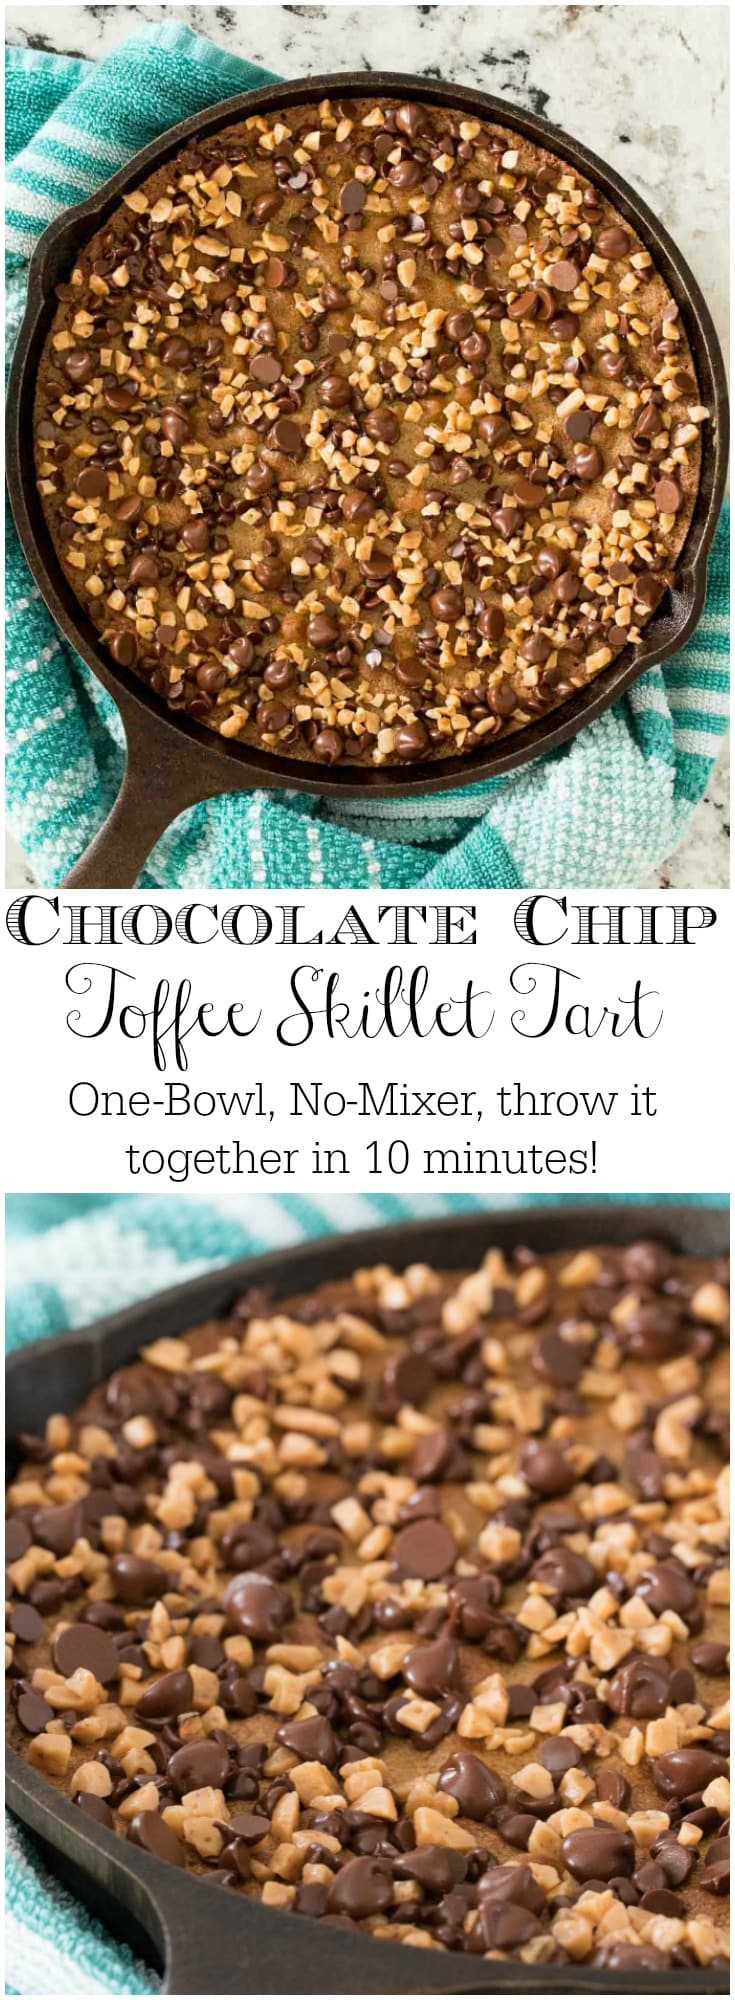 No time to make a fancy dessert? No one will know or care with this crazy-delicious, super-easy, one-bowl, 10-minute Chocolate Chip Toffee Skillet Tart!